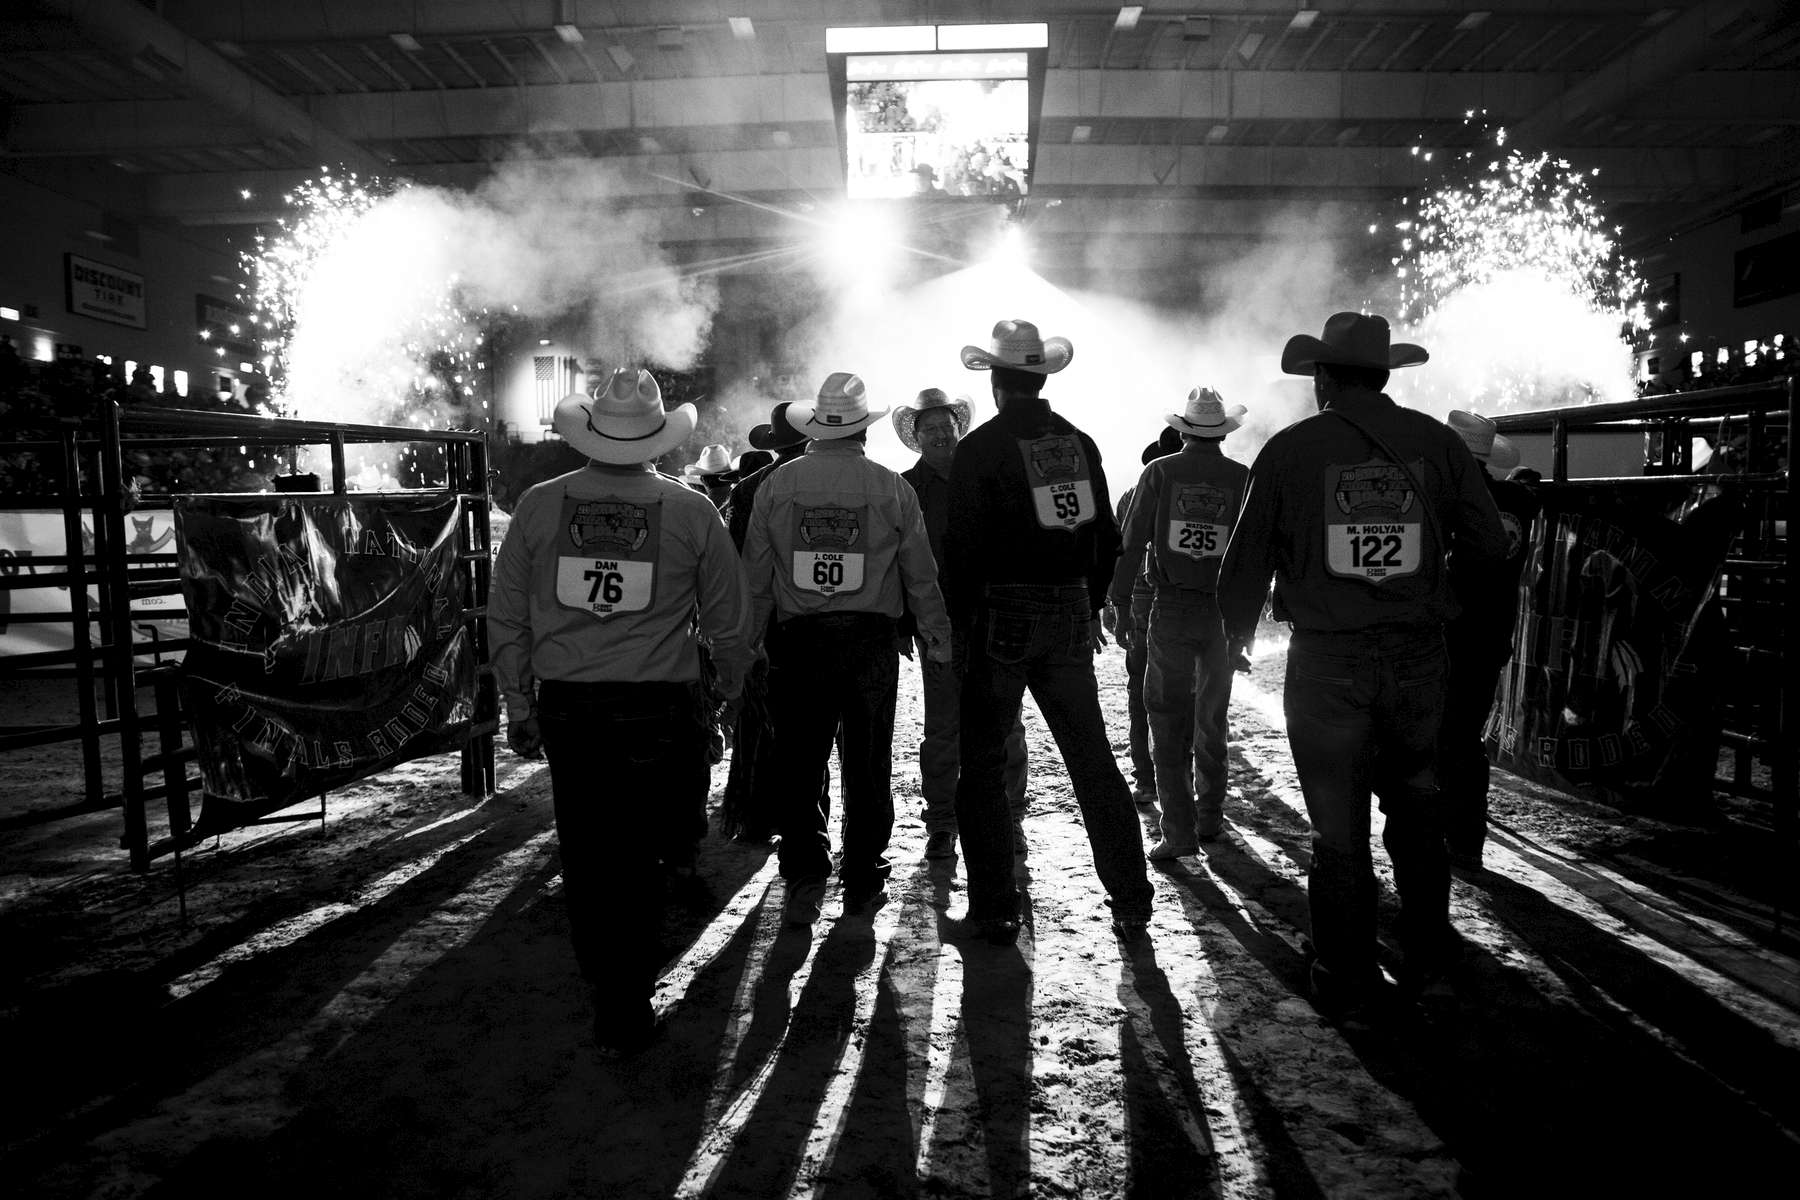 Contestants participate in the Grand Entry before the evening's competitions of the 2019 Indian National Finals Rodeo in Las Vegas, Nevada on October 25, 2019.